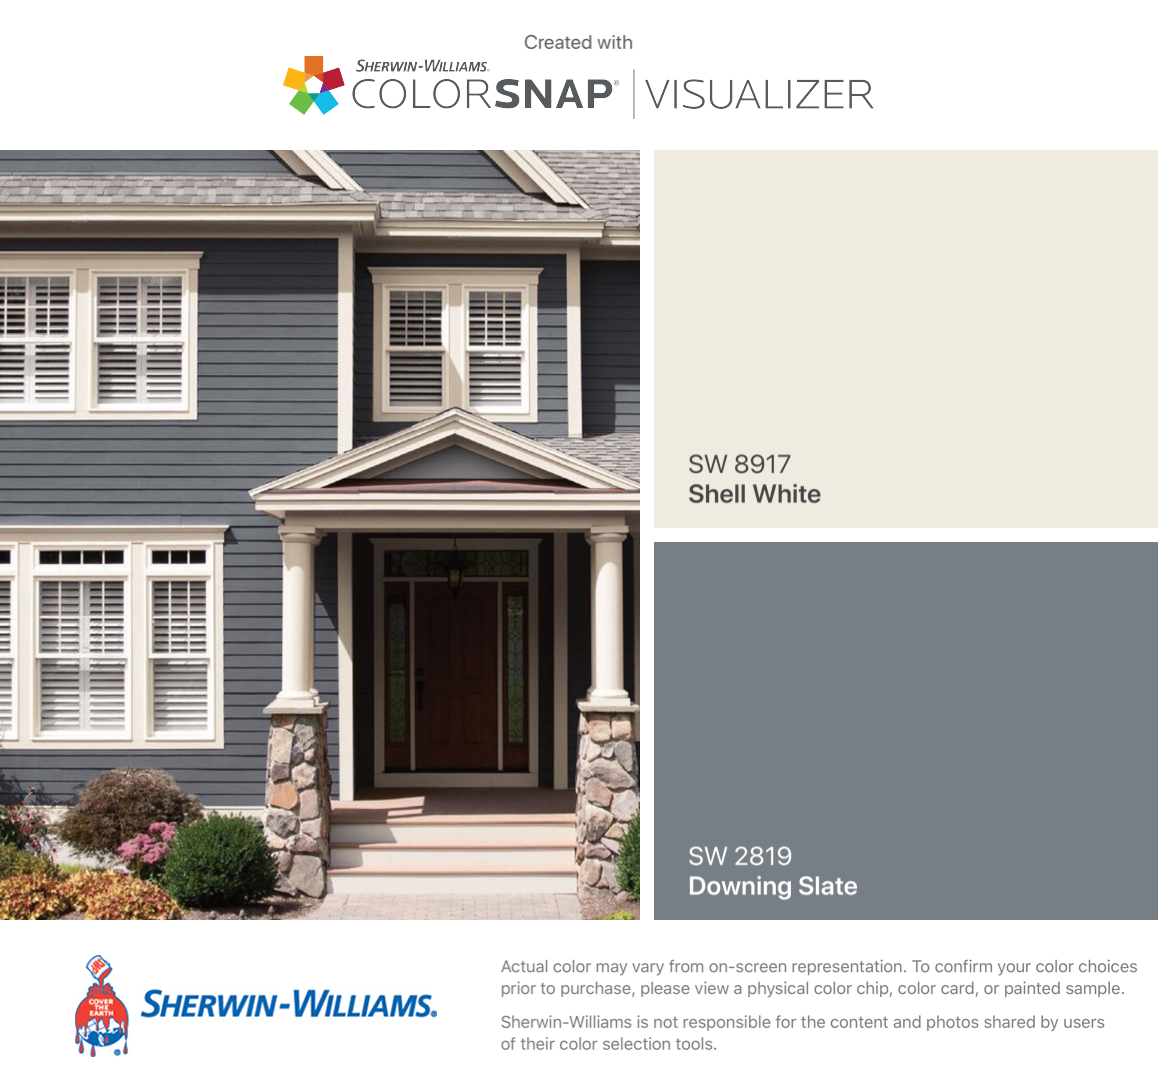 I Found These Colors With Colorsnap Visualizer For Iphone By Sherwin Williams Shel Exterior Paint Colors For House House Paint Exterior Exterior House Colors